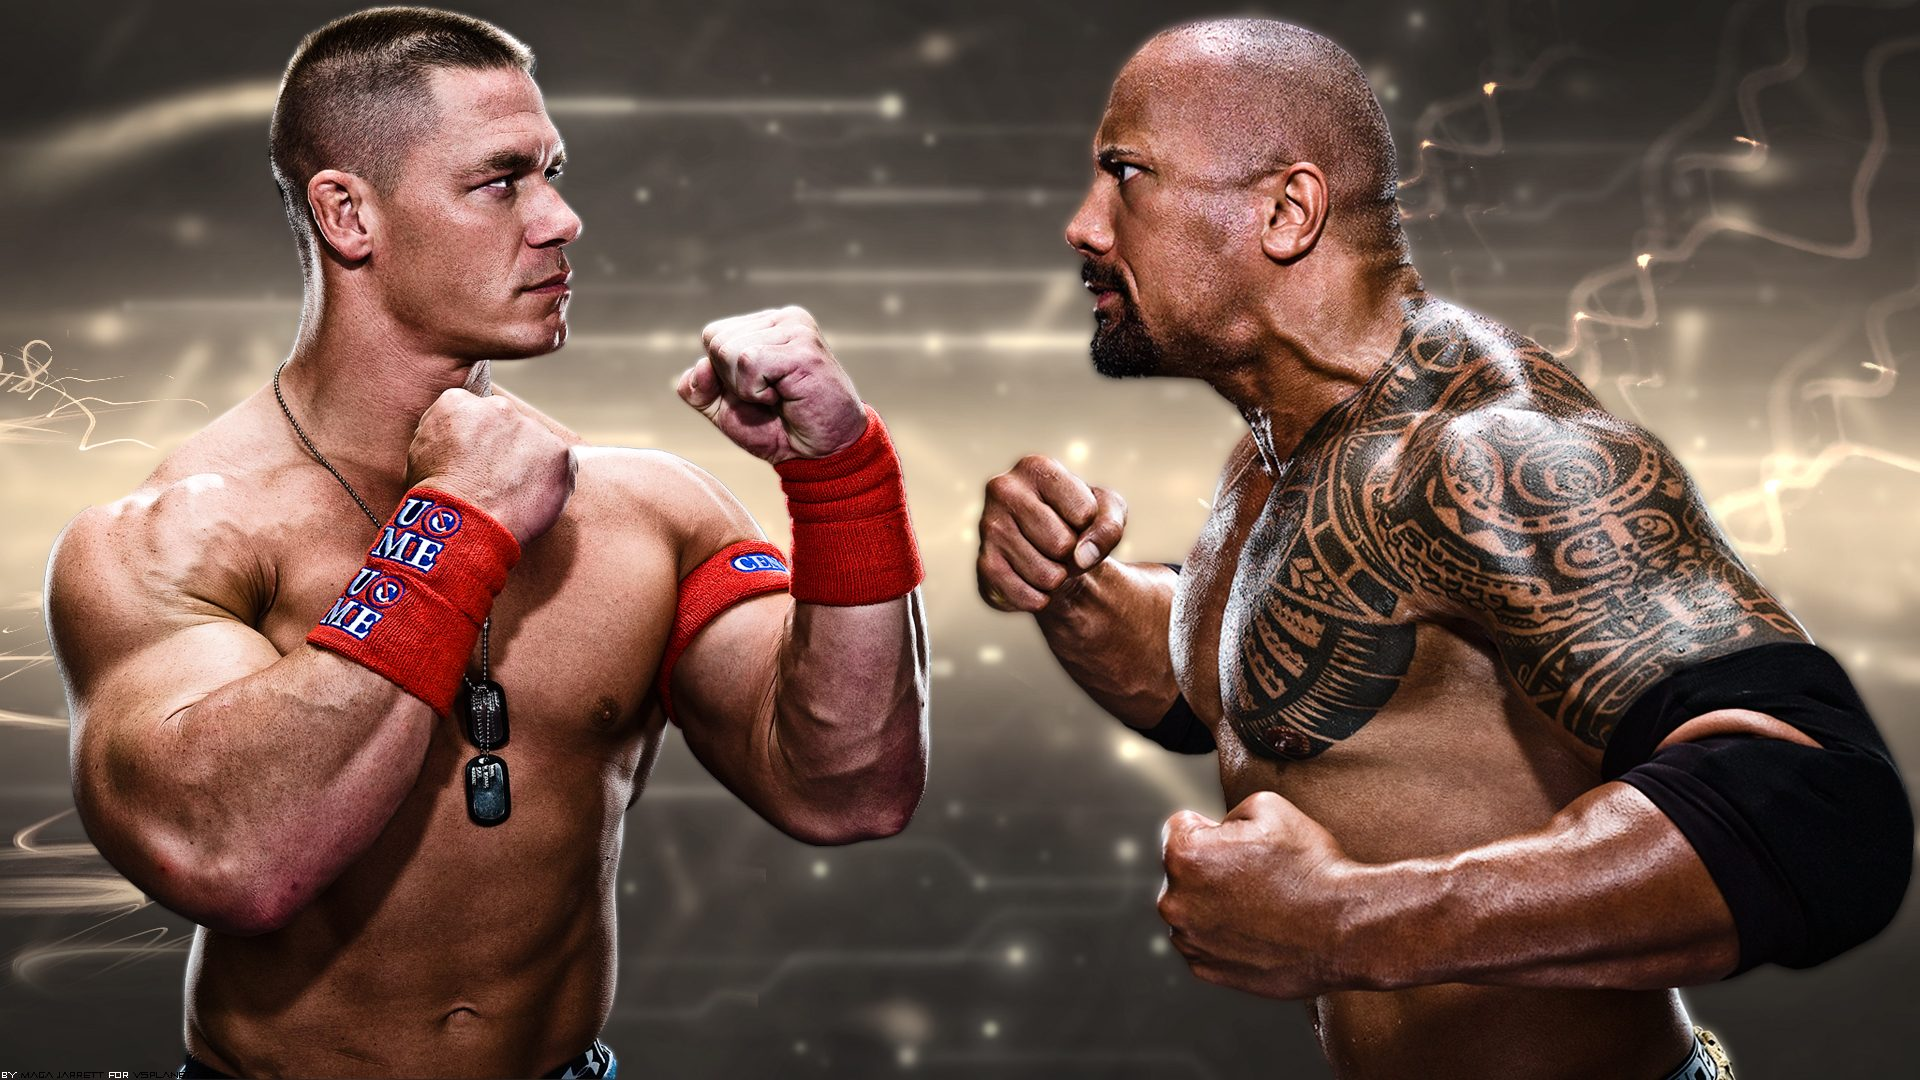 John Cena vs Dwayne Johnson